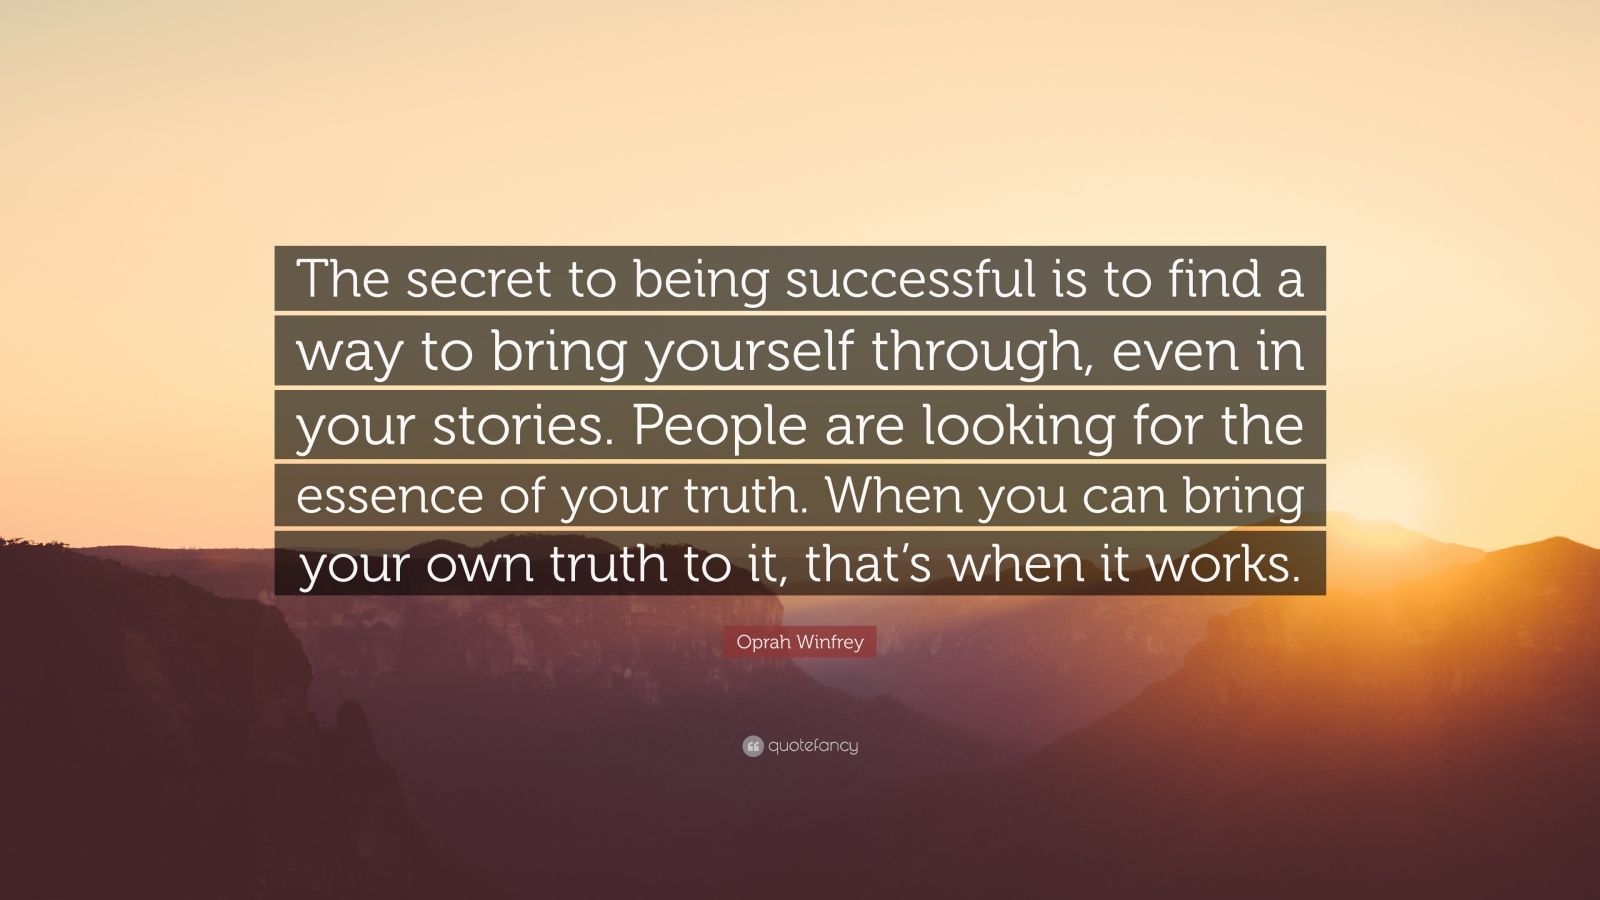 """Oprah Winfrey Quote: """"The secret to being successful is to find a way to bring yourself through, even in your stories. People are looking for the essence of your truth. When you can bring your own truth to it, that's when it works."""""""